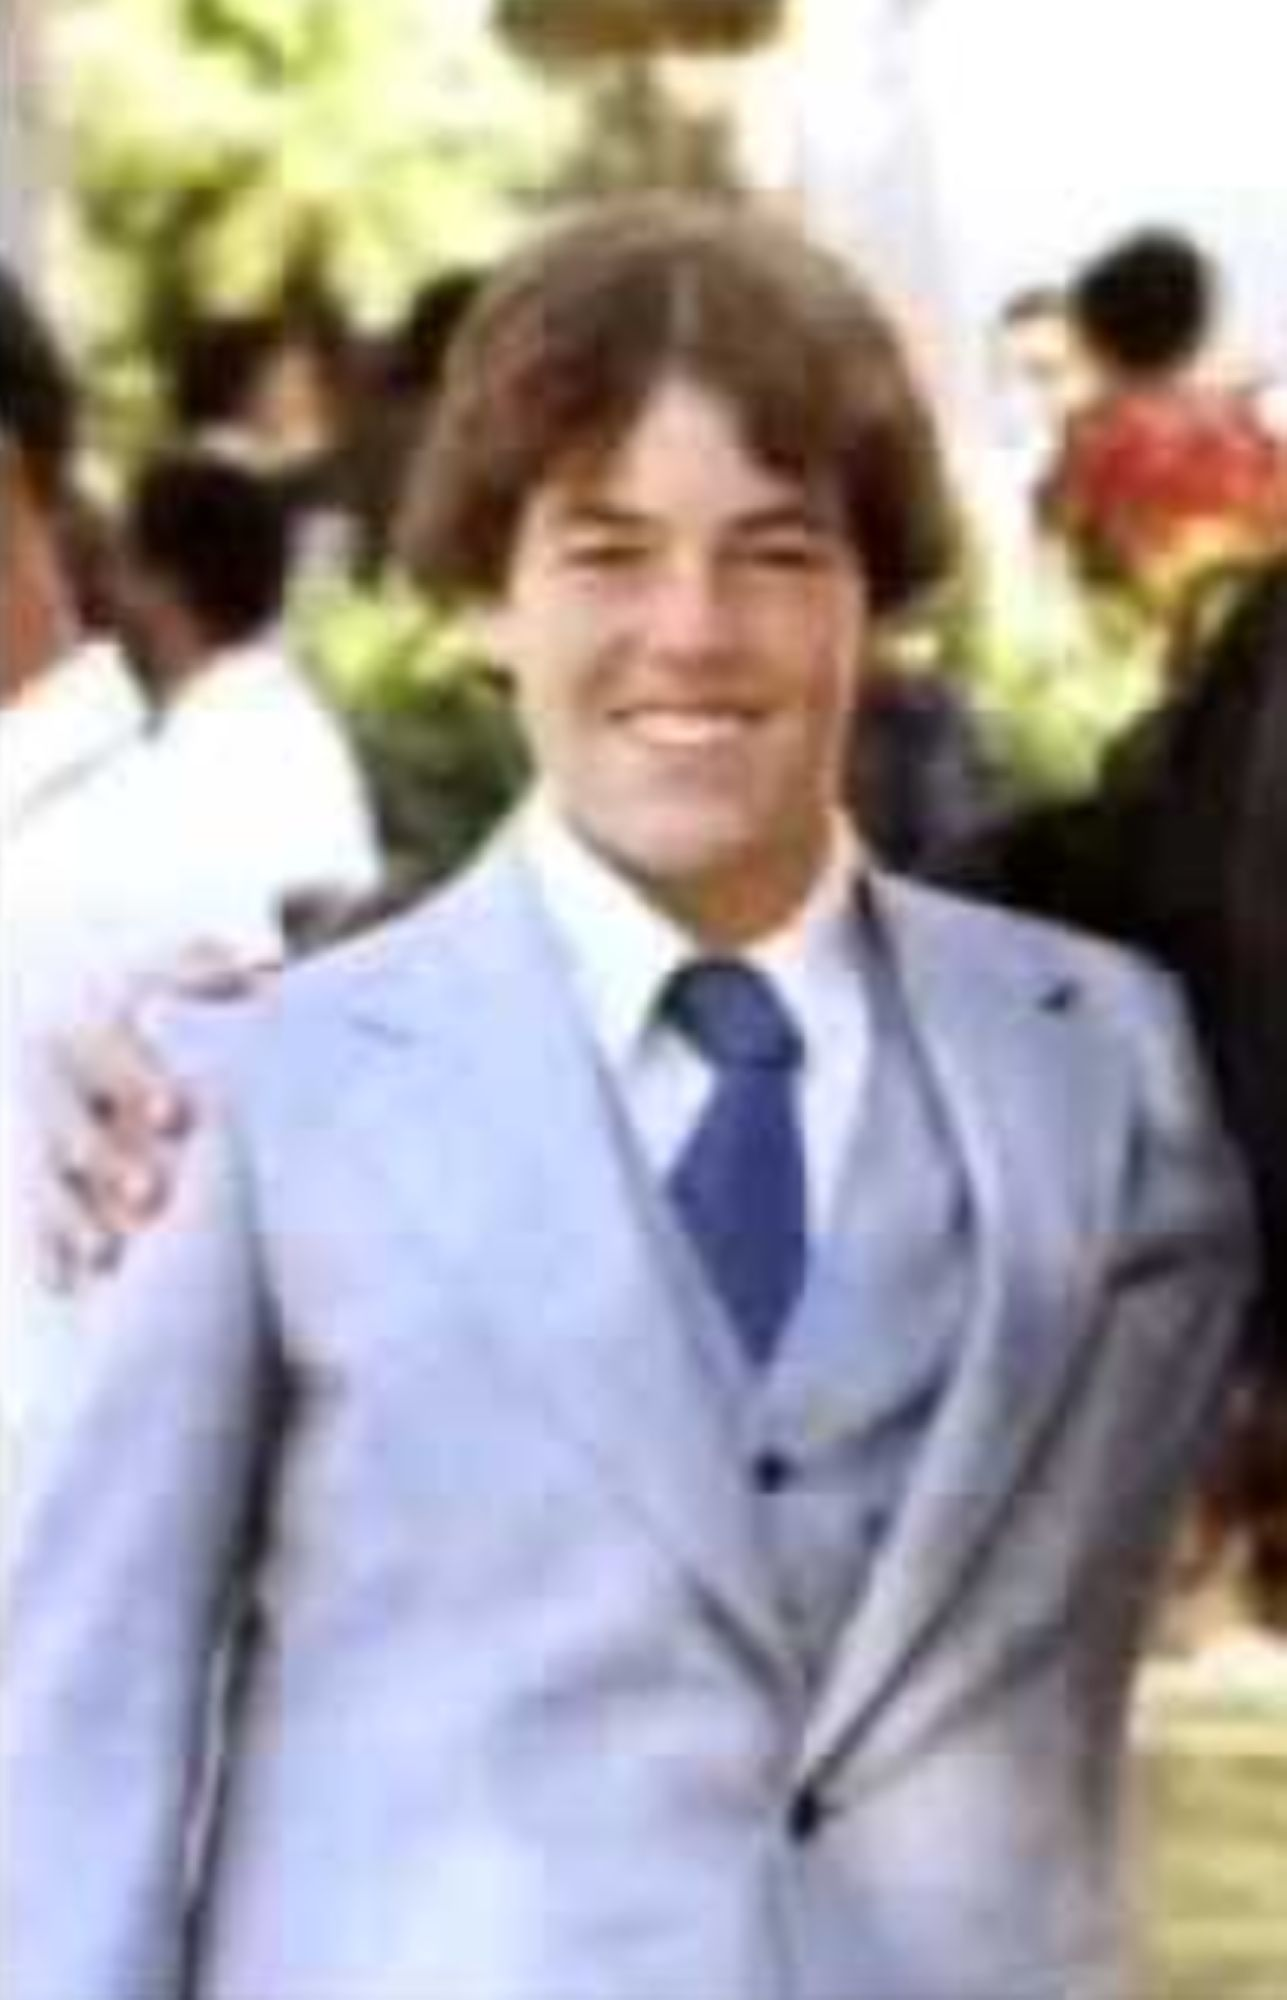 06-Adam-Young-Straight-hair